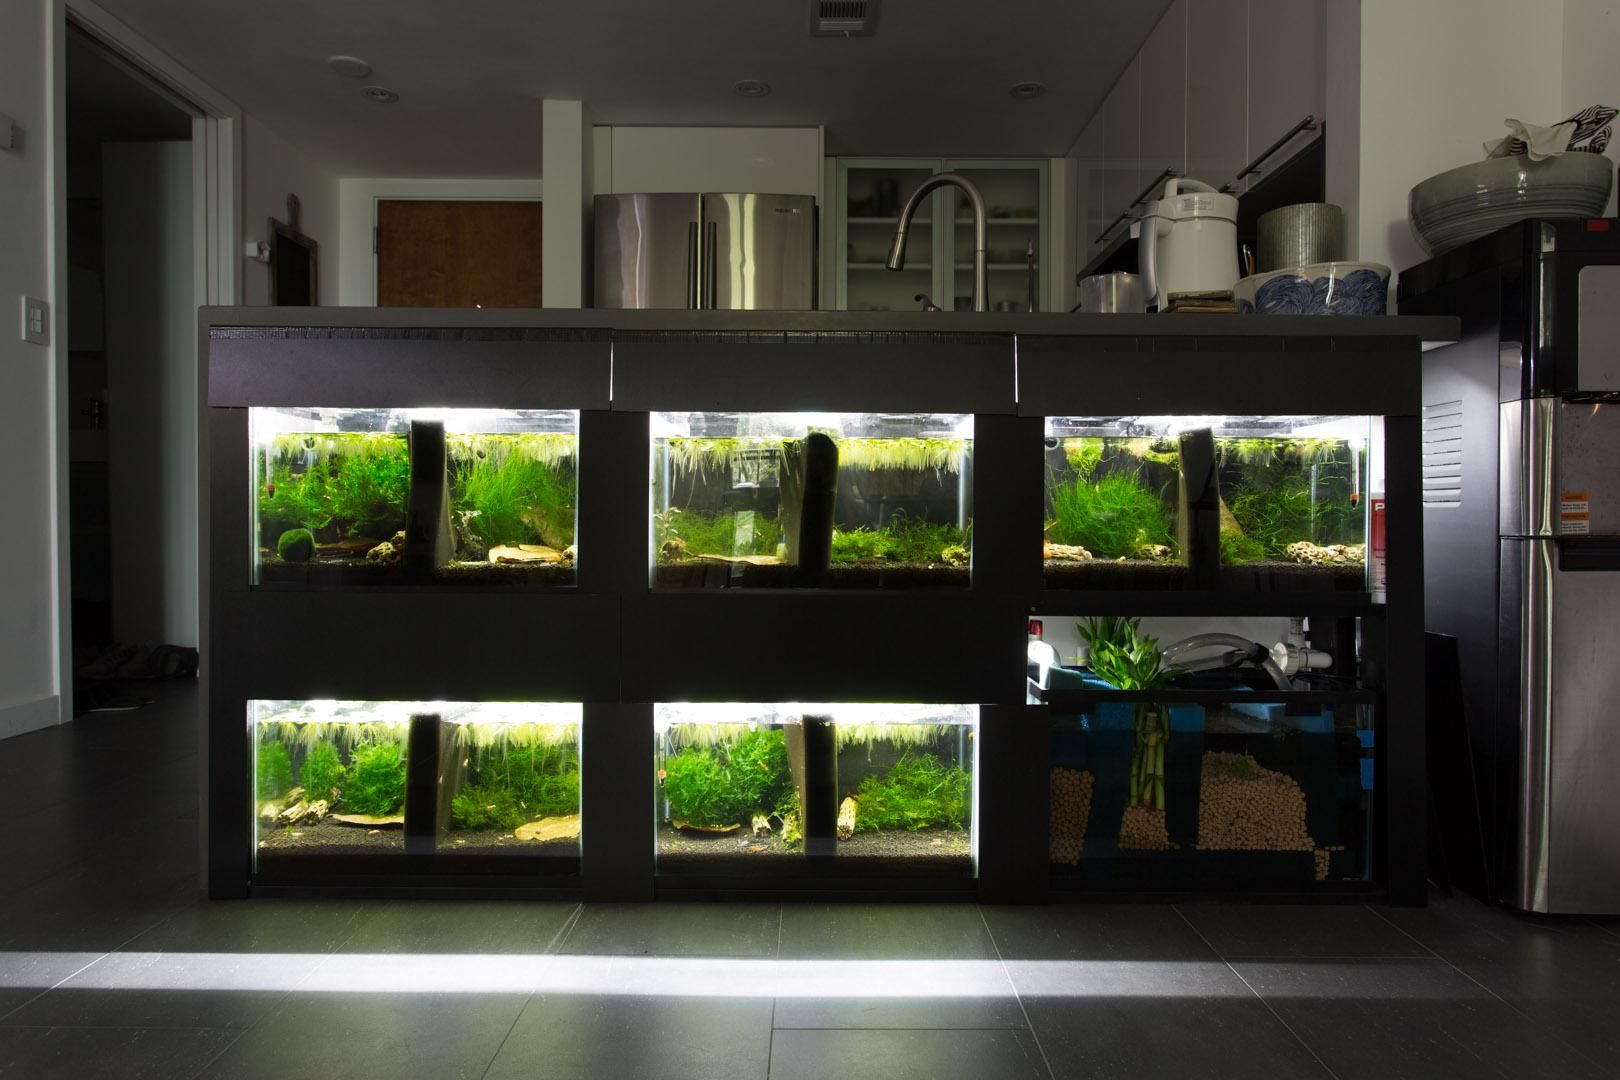 6 X 10g Shrimp Rack Under Kitchen Countertop 56k Page 9 Fishing Room Fish Gallery Fish Tank